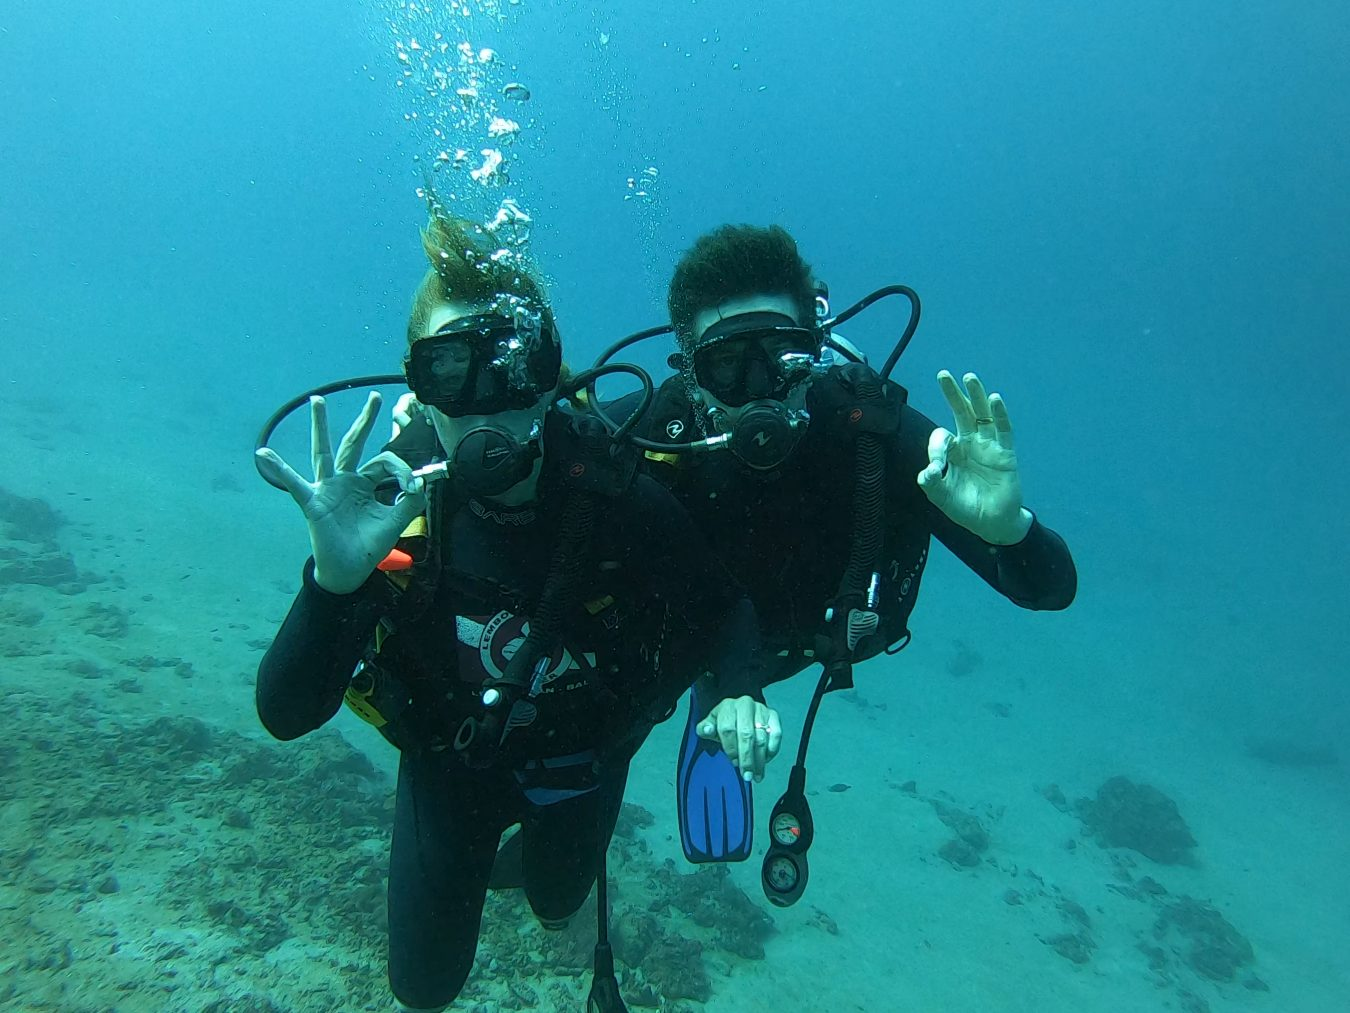 Maja and her husband scuba diving